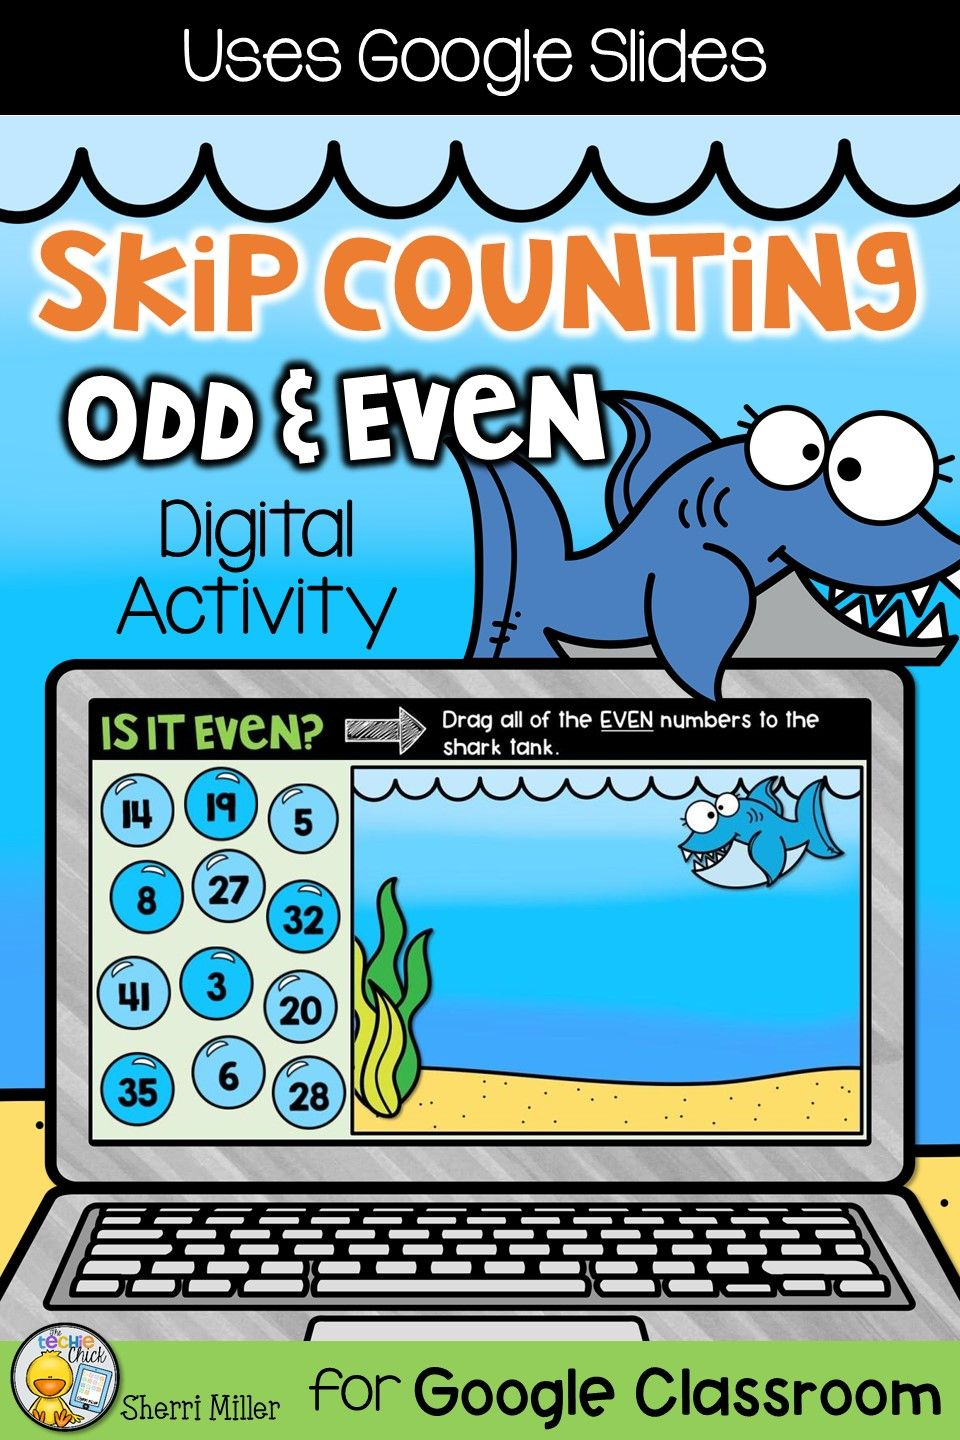 Skip Counting Odd Even Math Activity For Google Classroom Math Activities Google Classroom Math [ 1440 x 960 Pixel ]